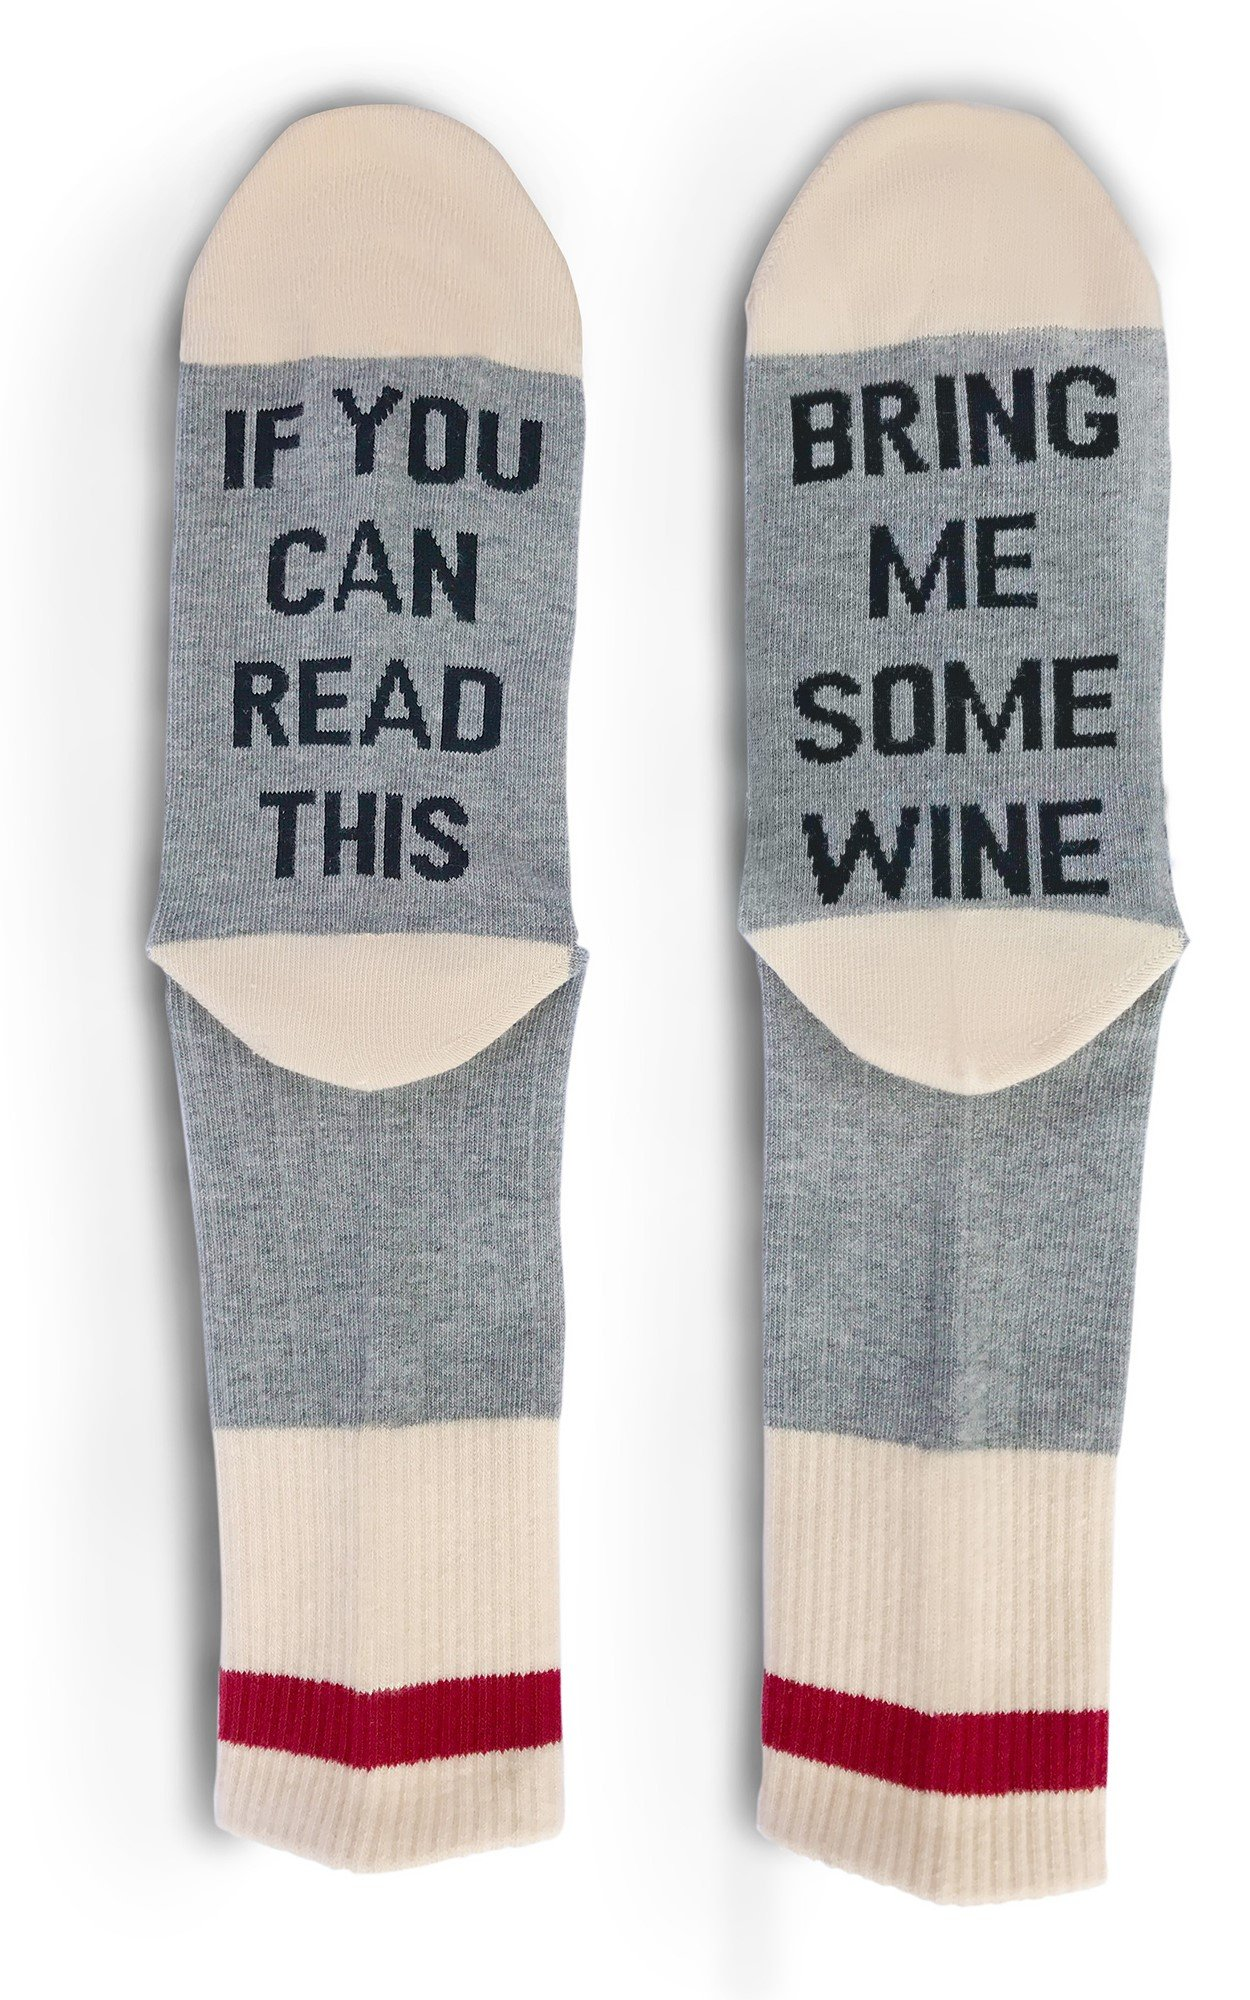 TheOnly Wine Gift Wine Socks - and Gift Box''If you can read this bring me some wine'' Perfect Christmas Gift for Wine Lovers, Birthdays, White Elephant, Mother Gift, Wife or Best Friend Wine Socks by The Only Gift Worth Giving (Image #4)